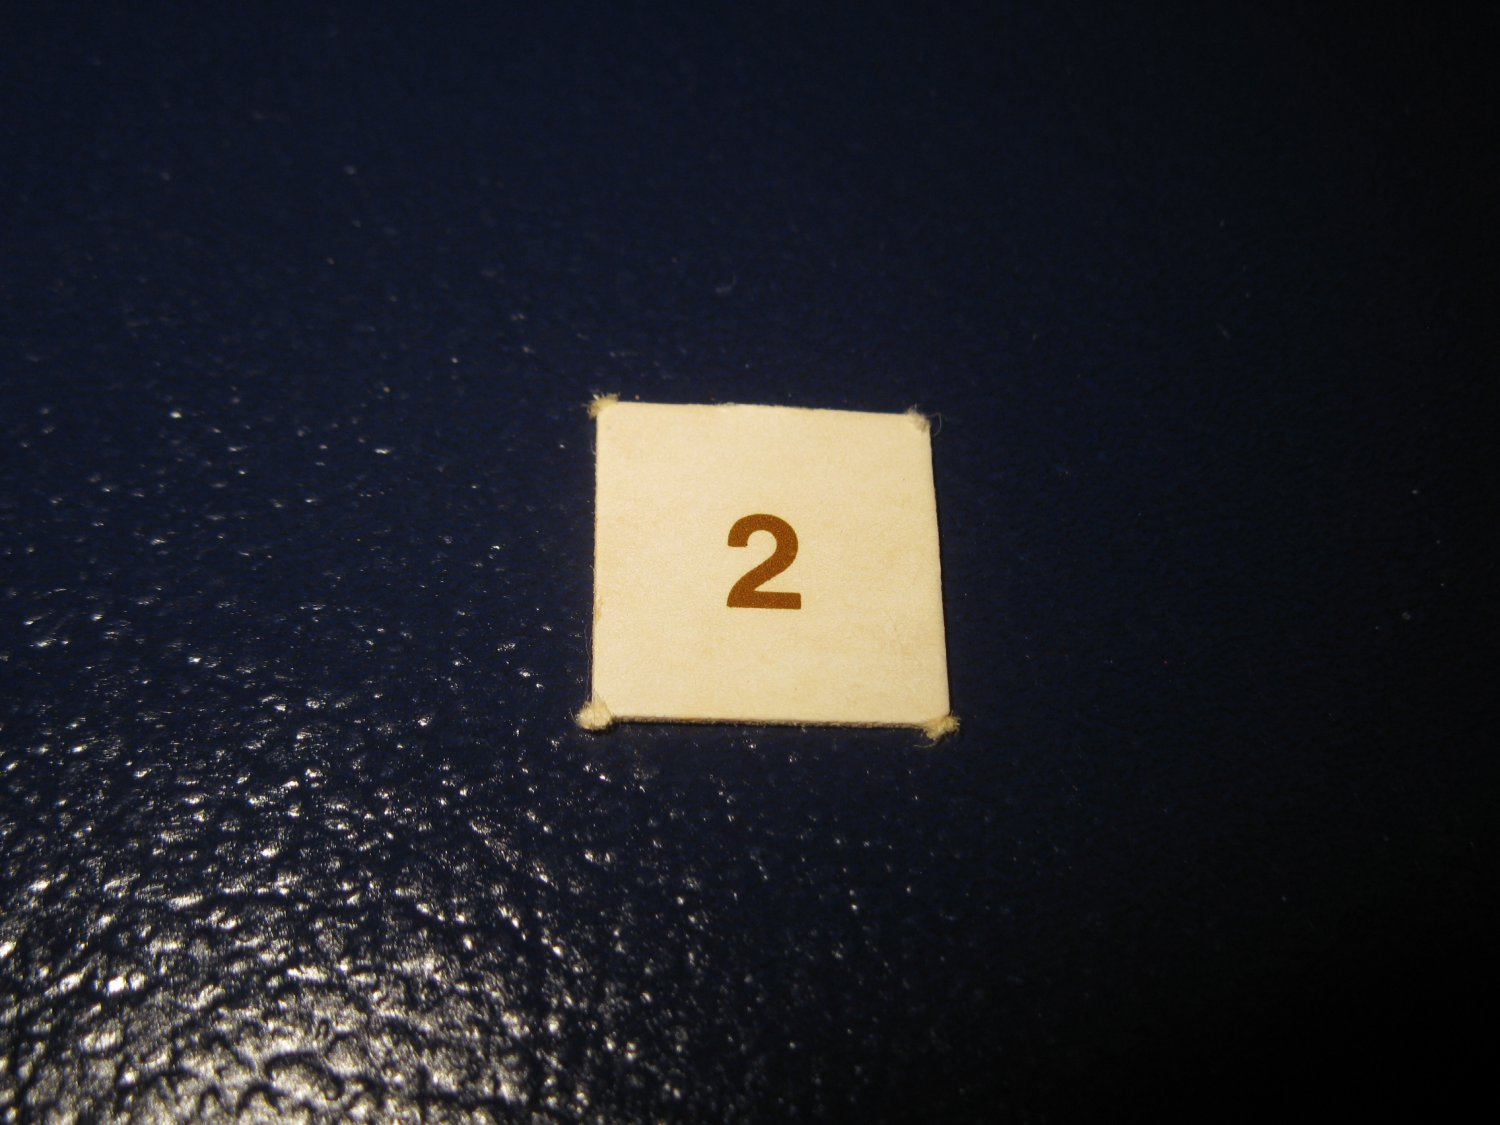 1980 TSR D&D: Dungeon Board Game Piece: #2 Square Marker